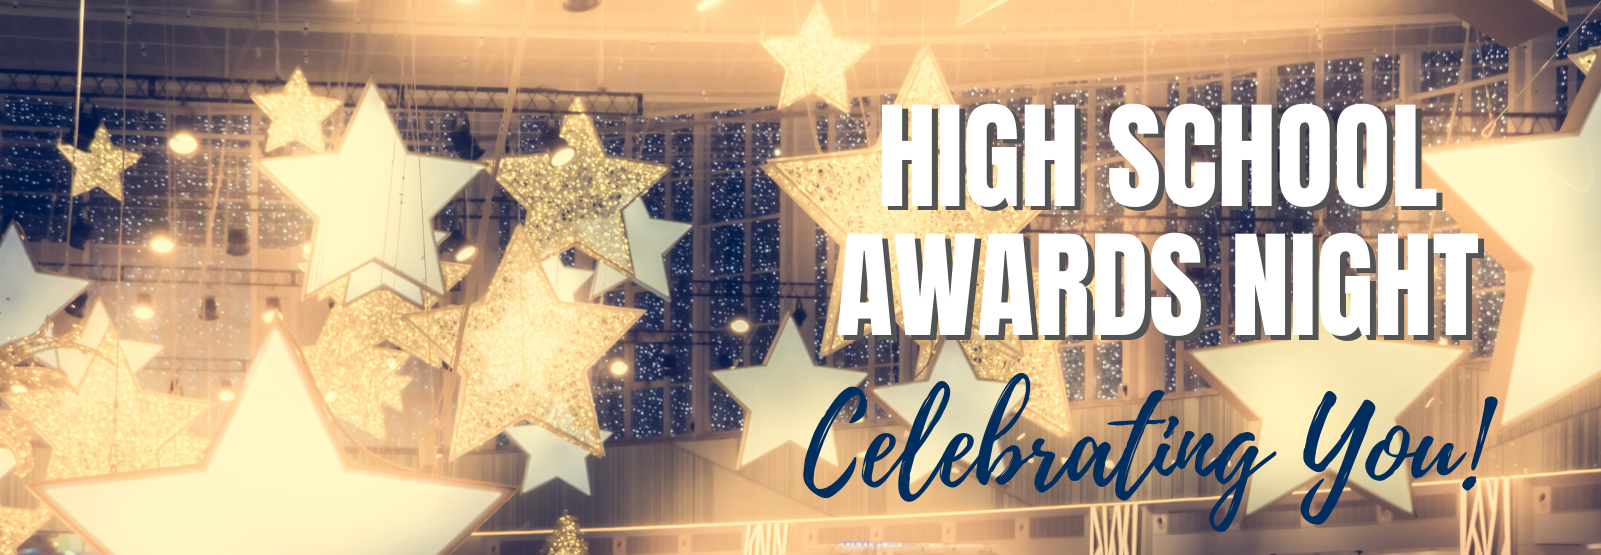 high school awards night - celebrating you!